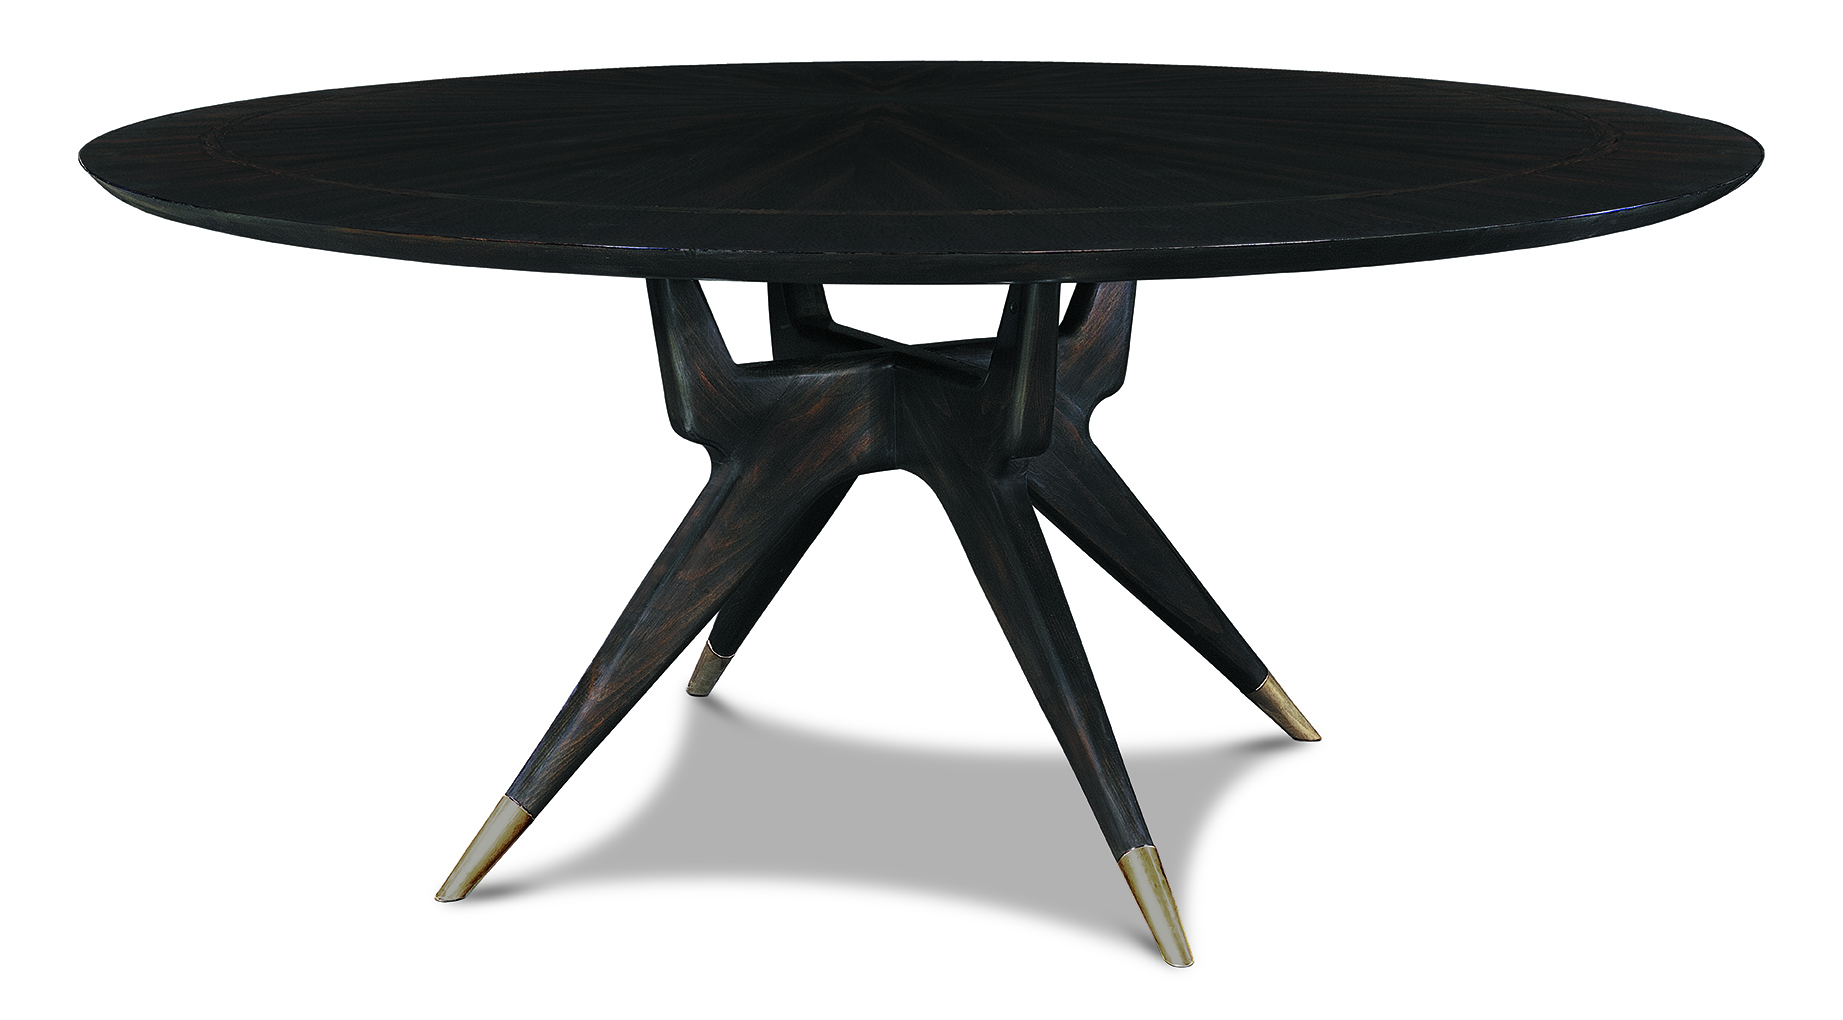 Hoven Dining Table 76x180